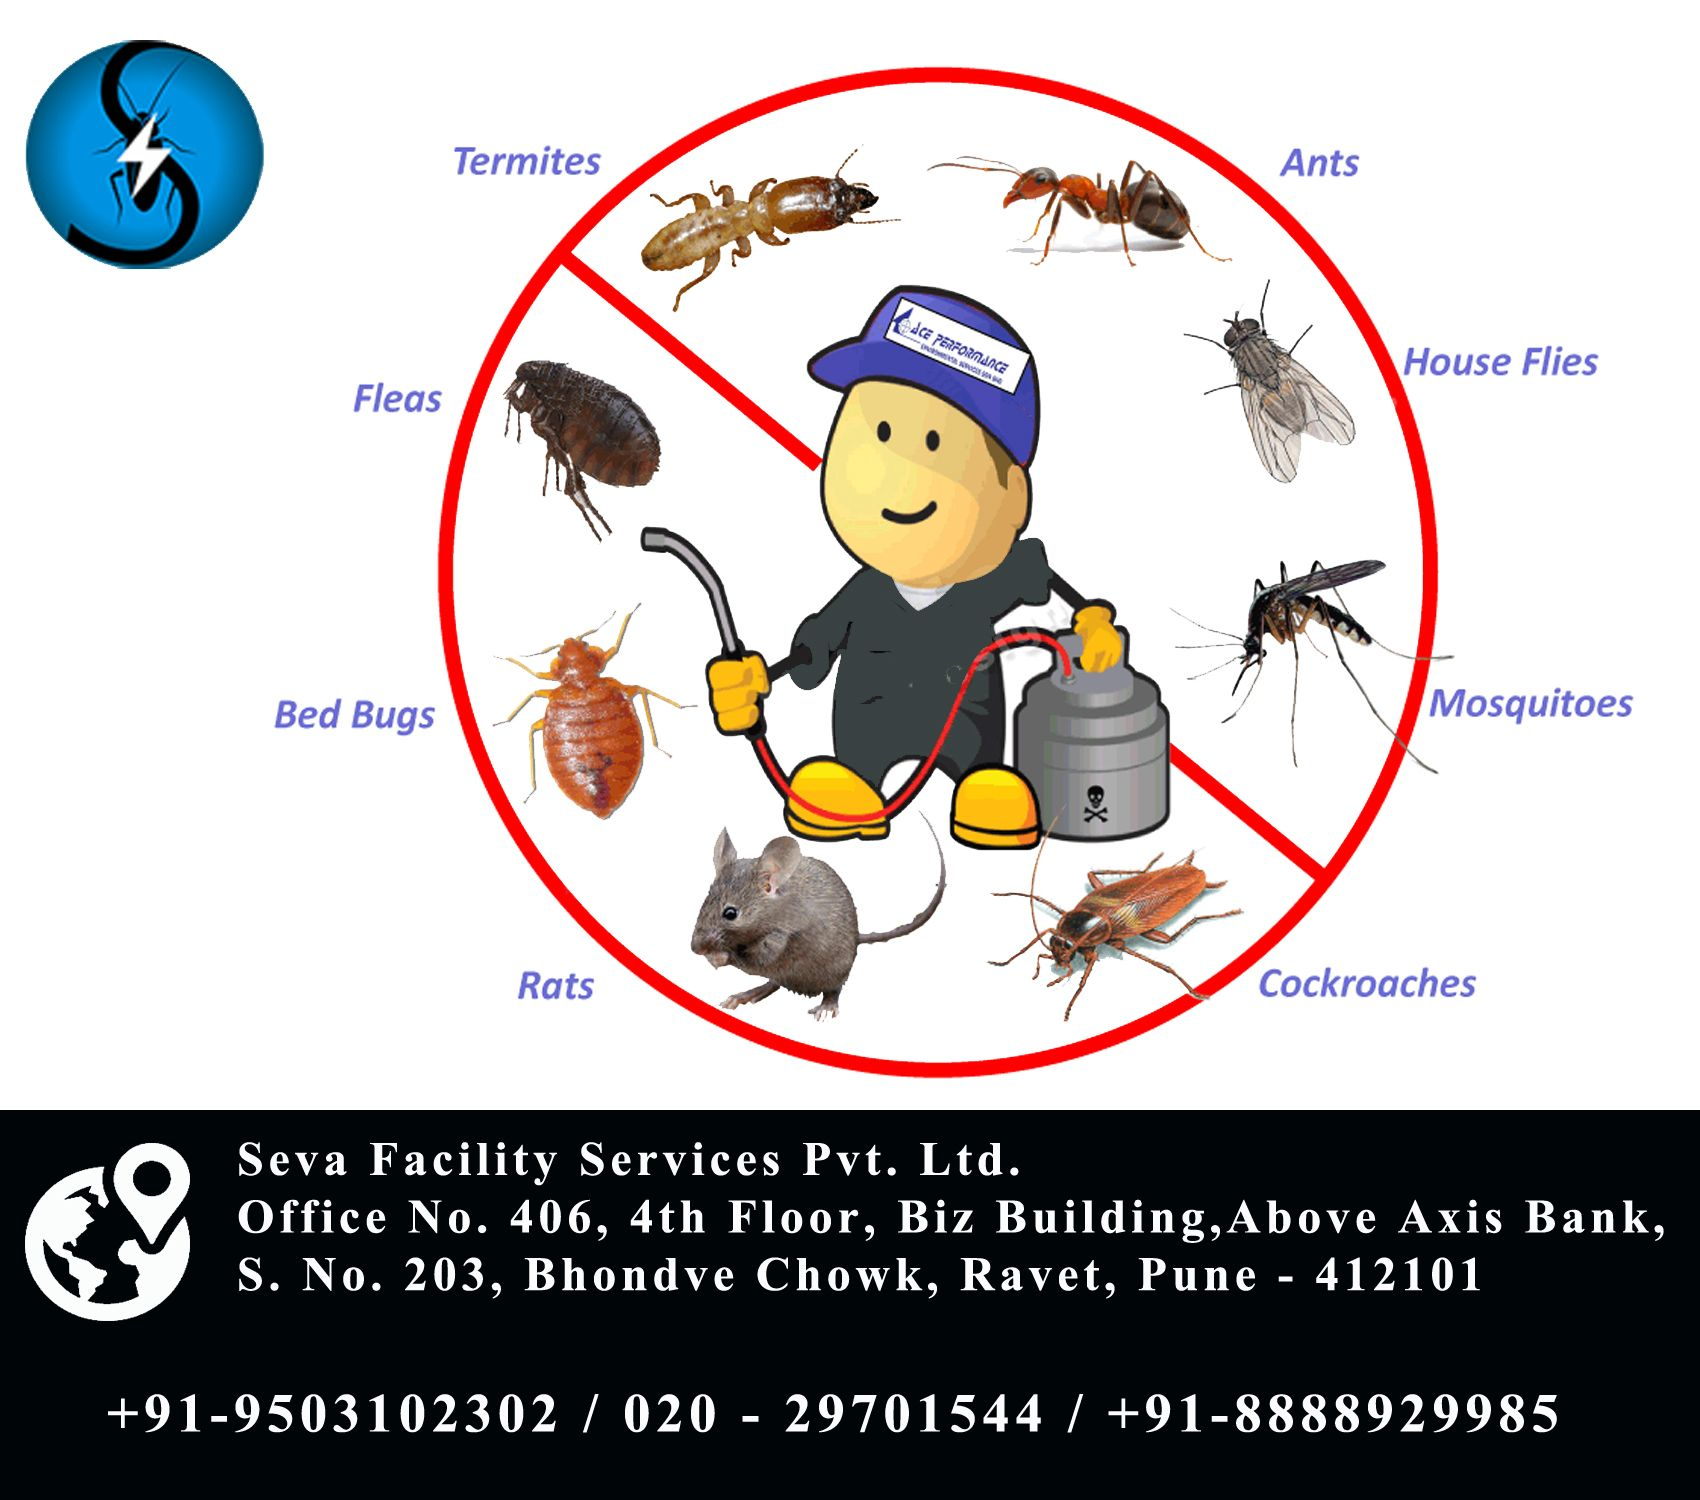 With Seva Facility Services protect your house from